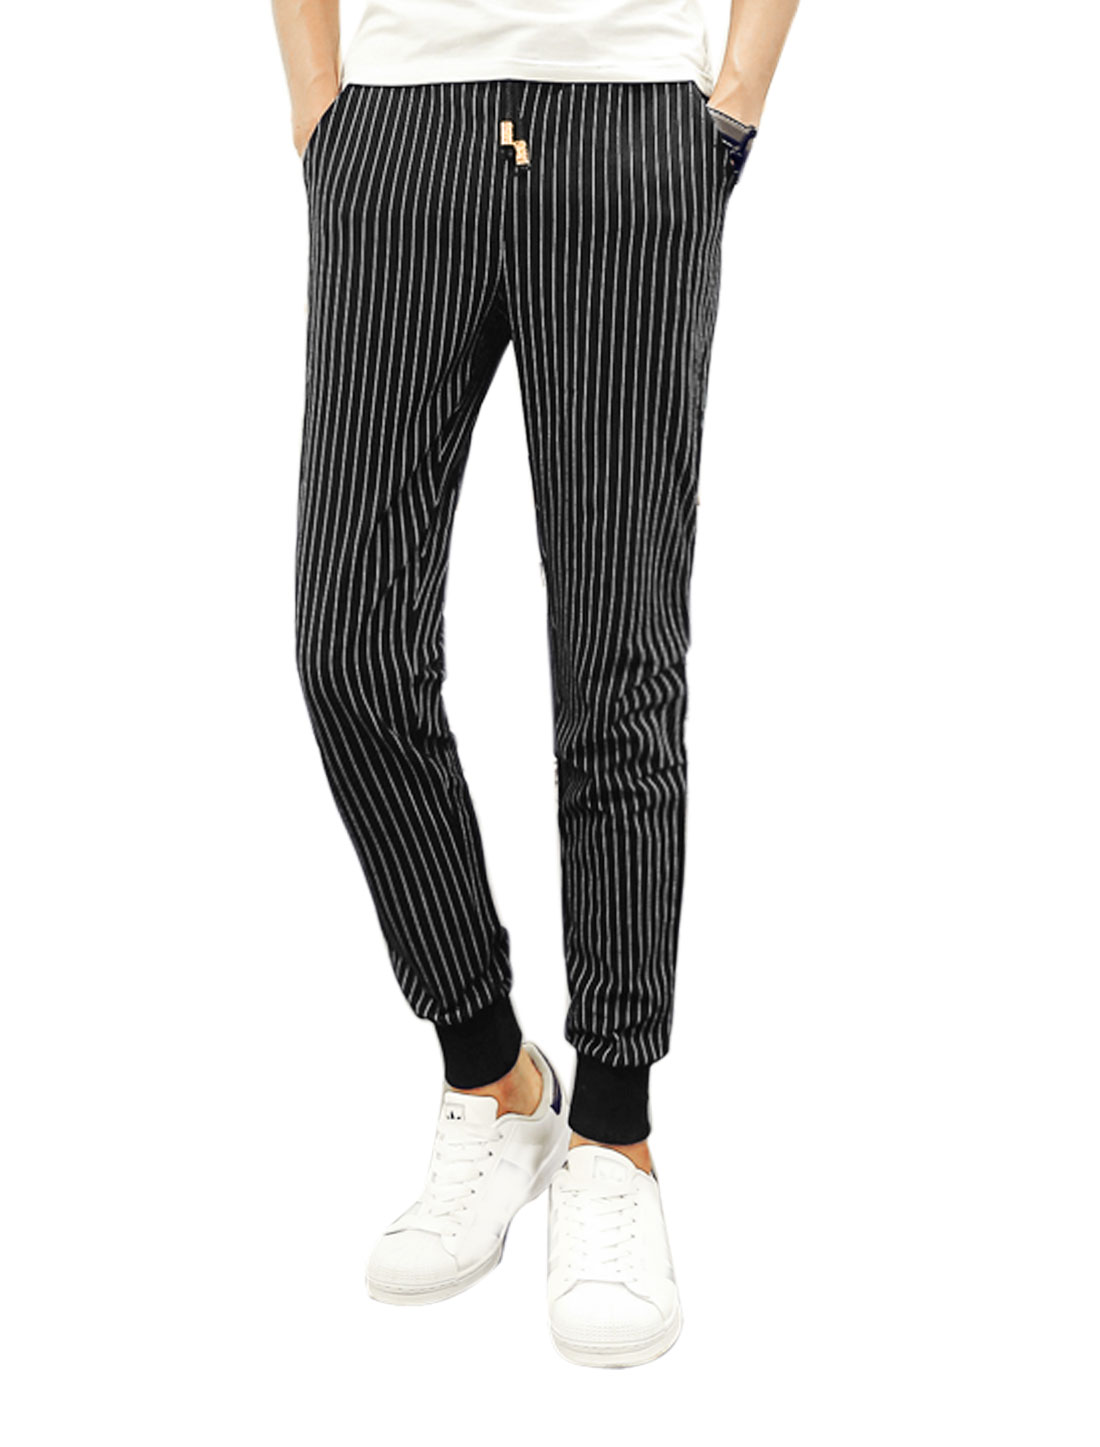 Men Drawstring Waist Stripes Ribbed Cuffs Leisure Pants Black W32